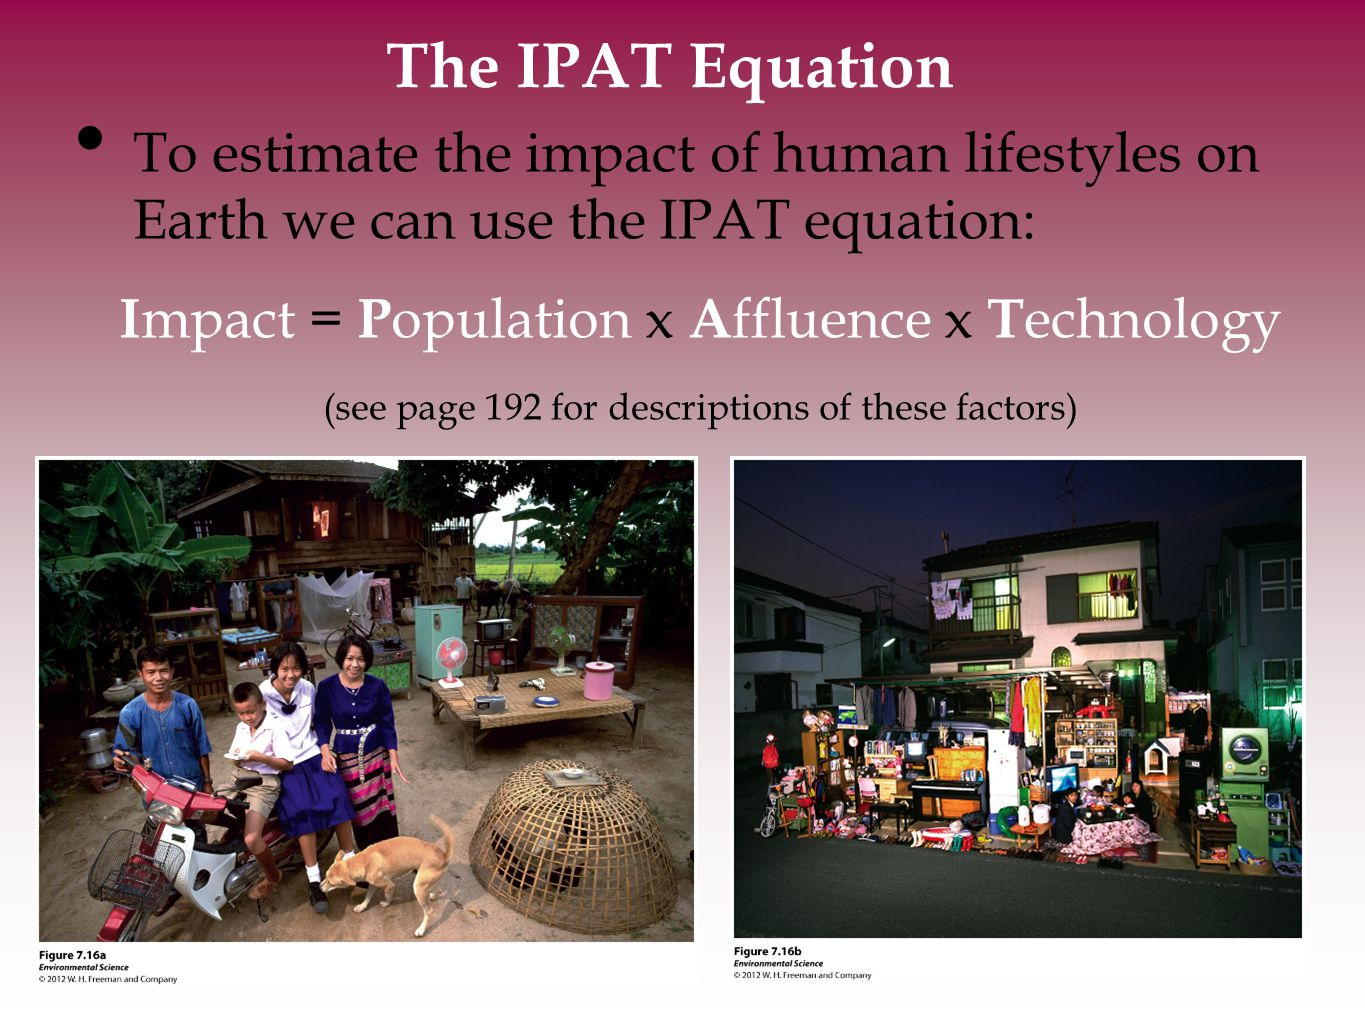 The IPAT Equation To estimate the impact of human lifestyles on Earth we can use the IPAT equation: